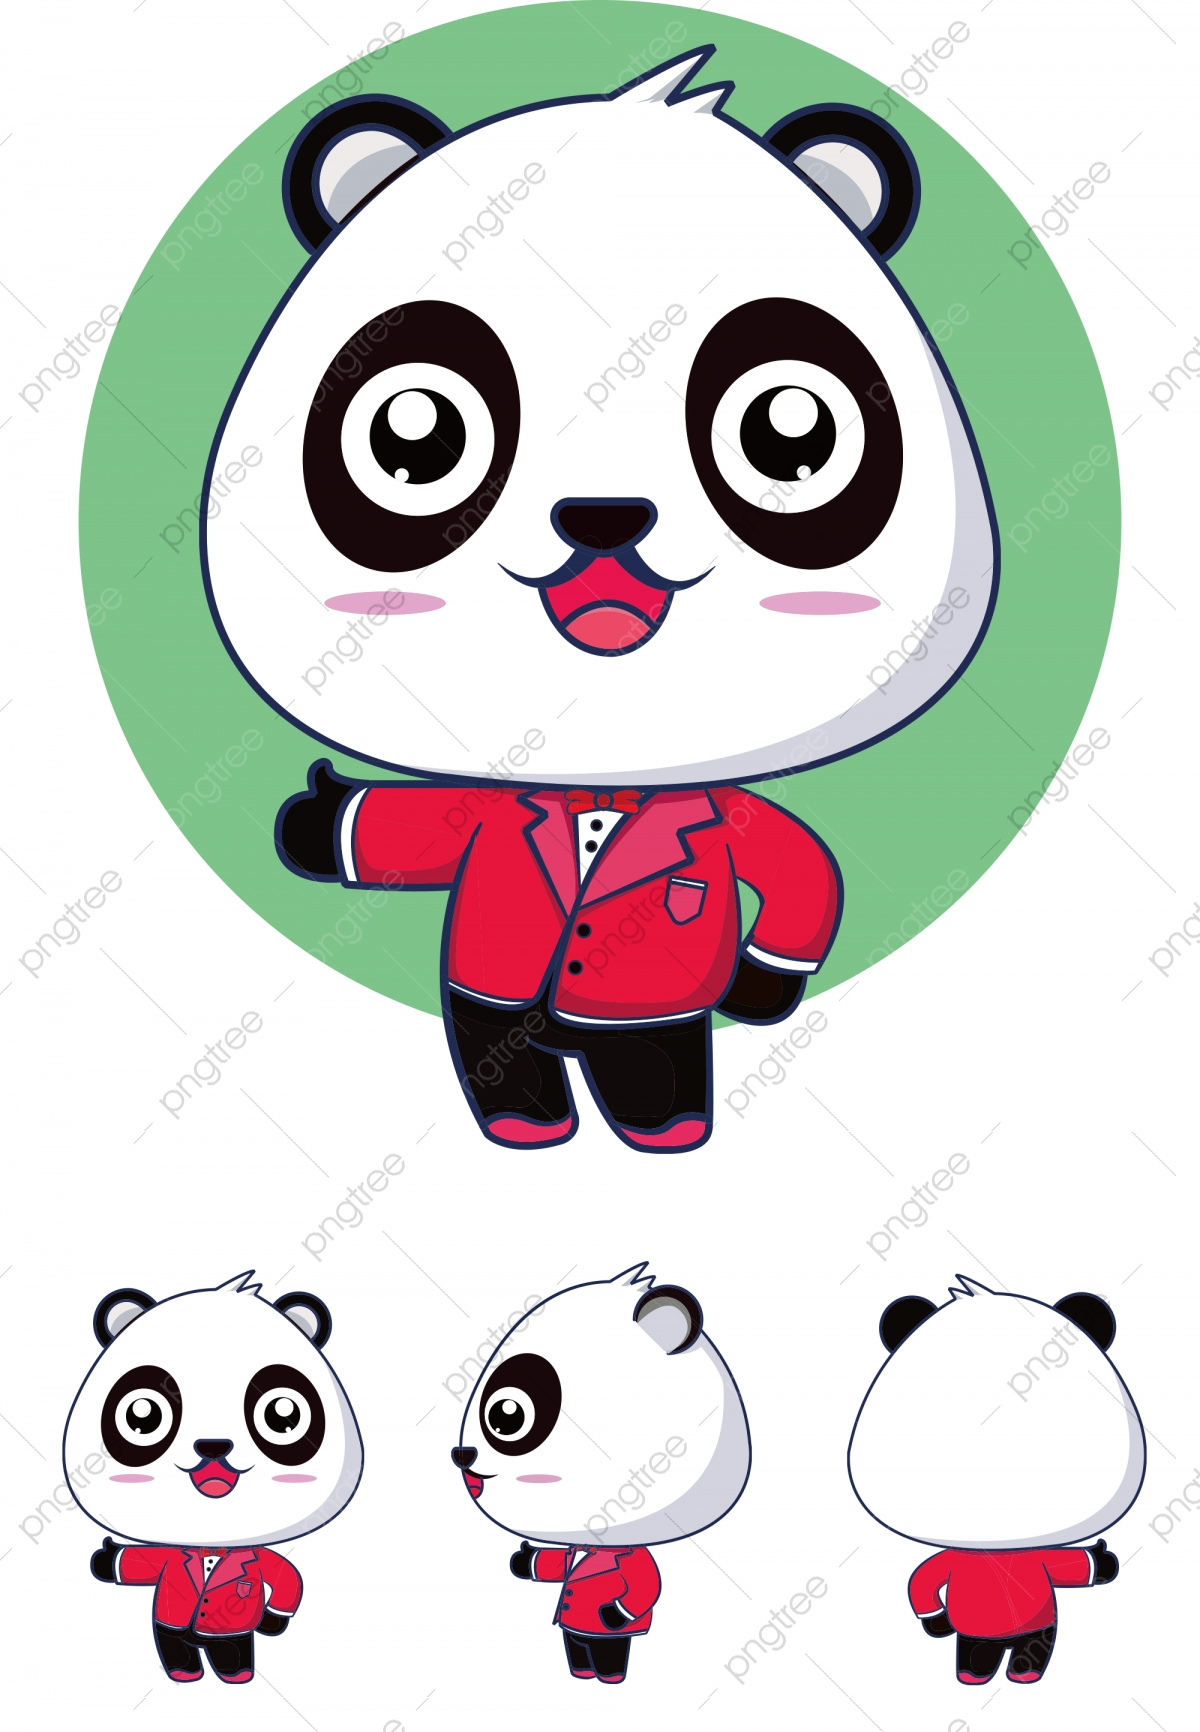 Creative image design view. Clipart panda three cartoon